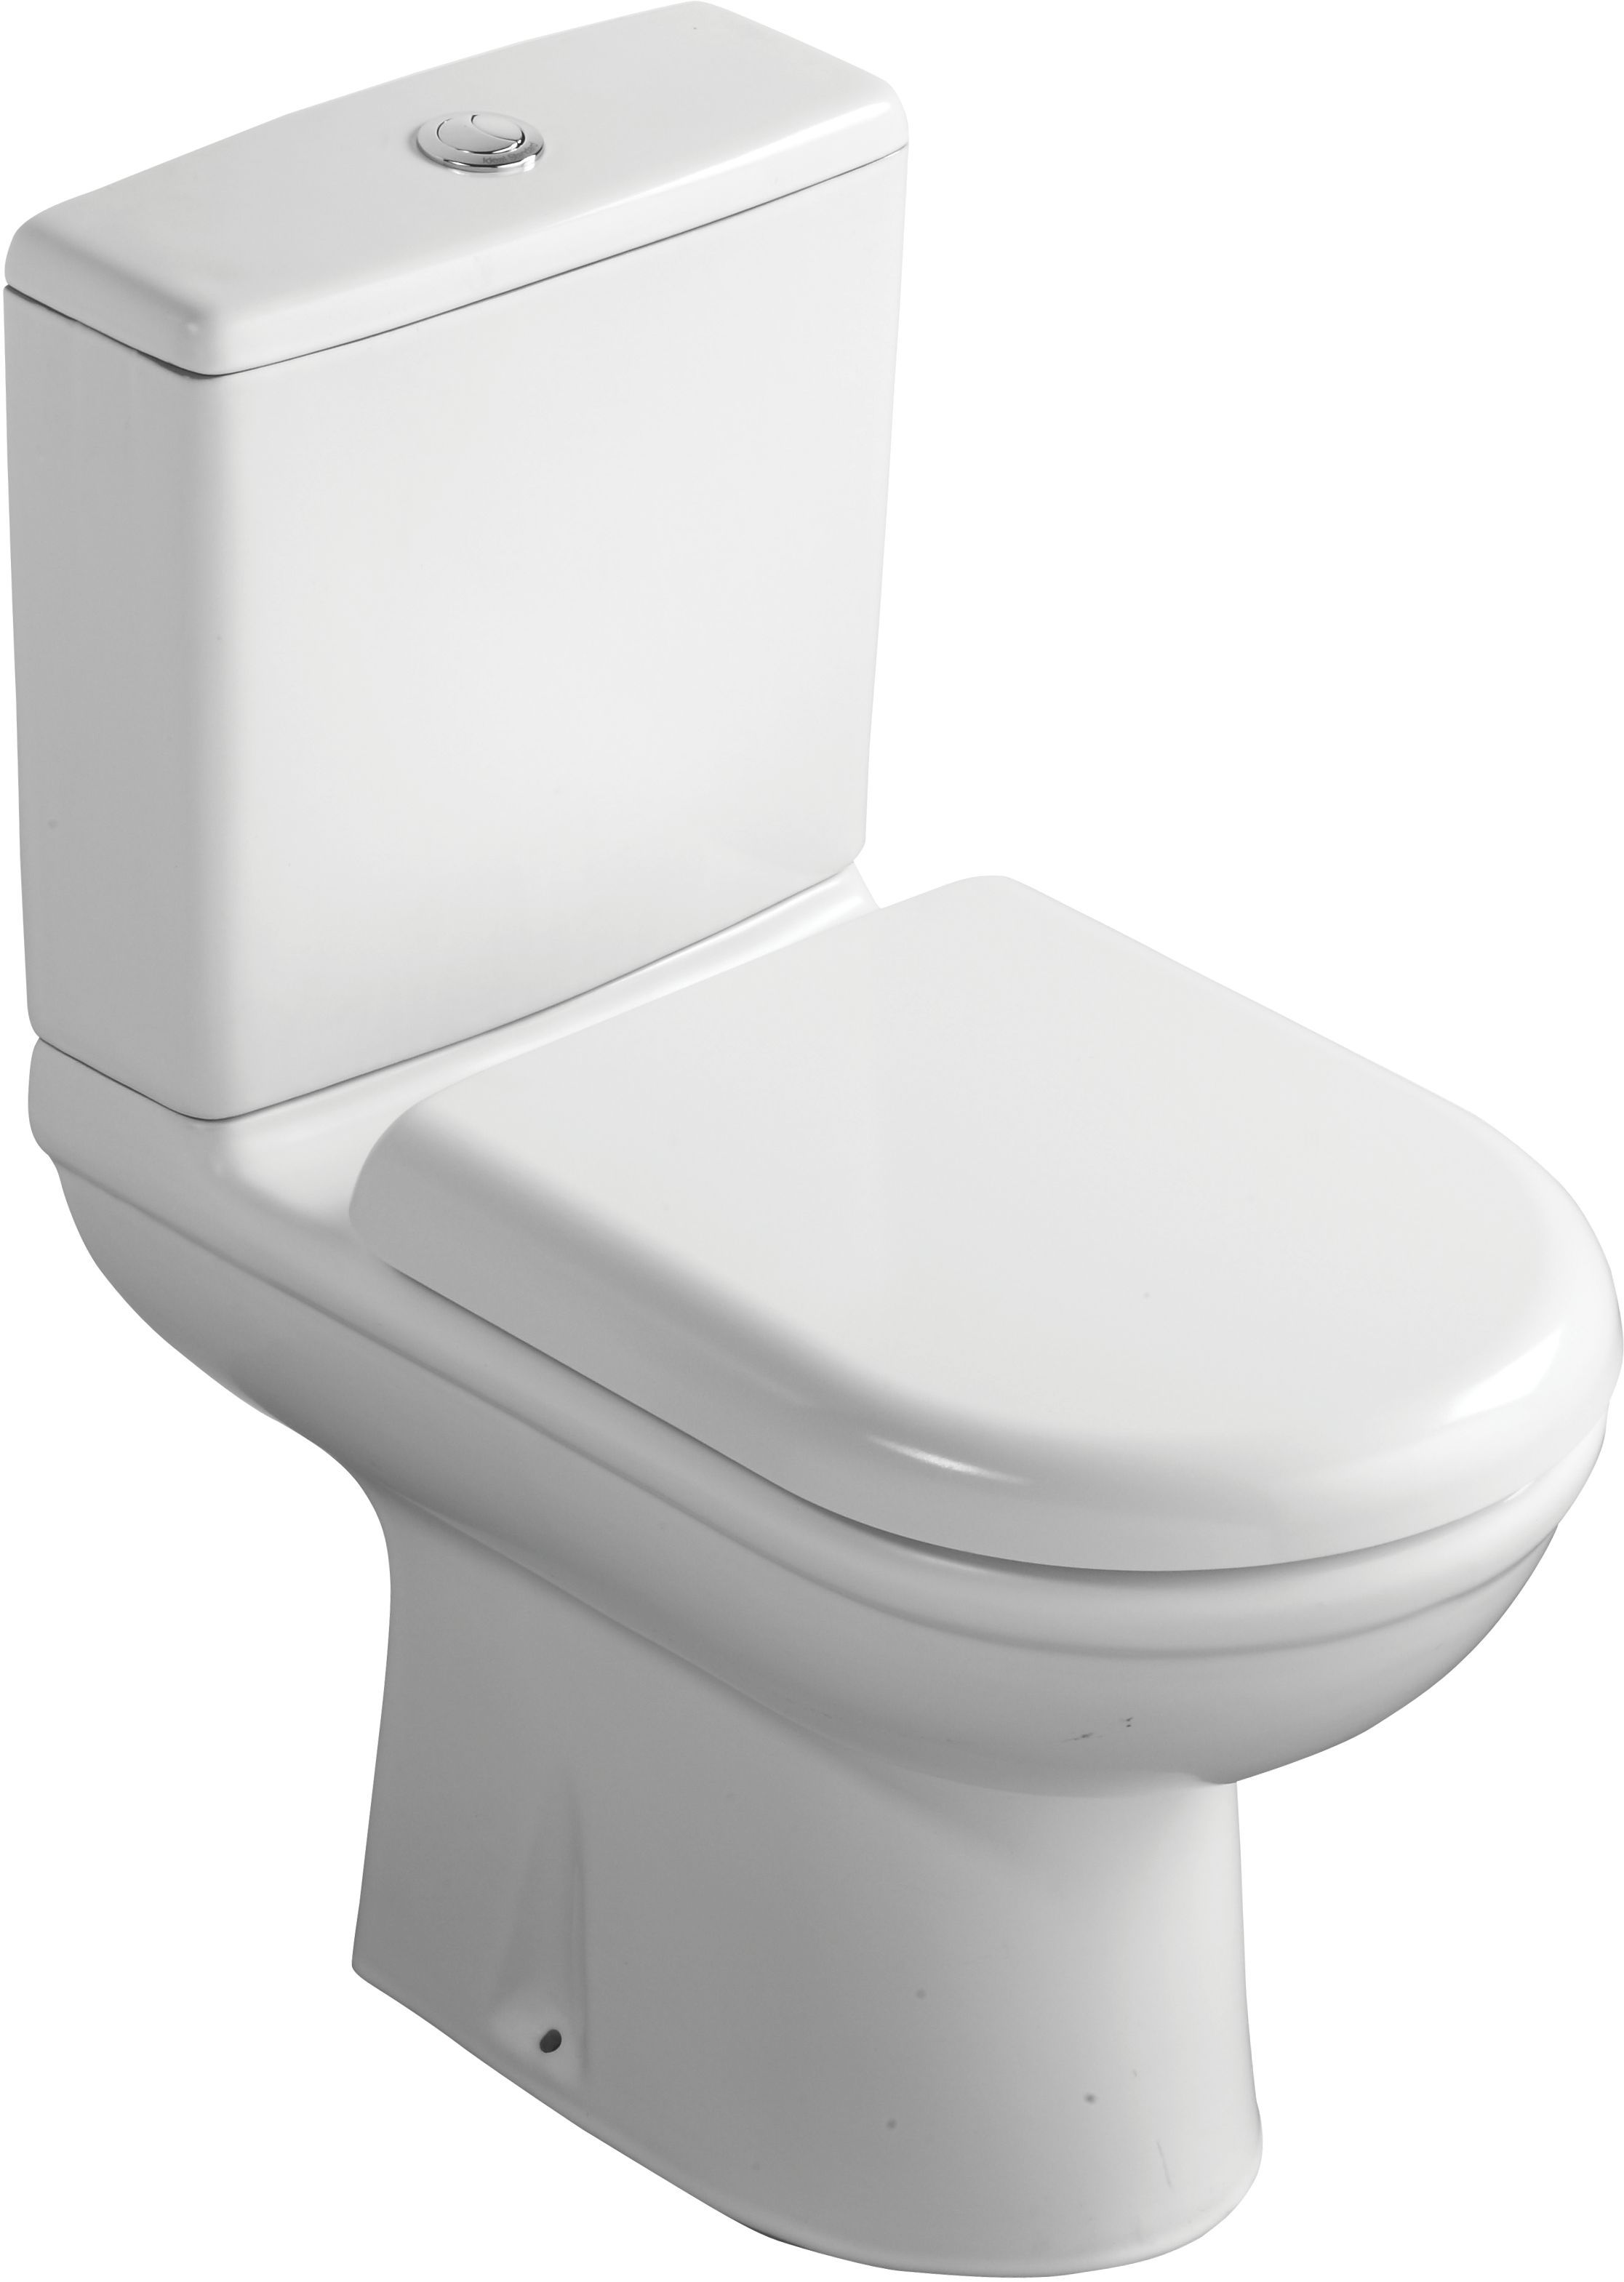 Toilet Accessories Ideas